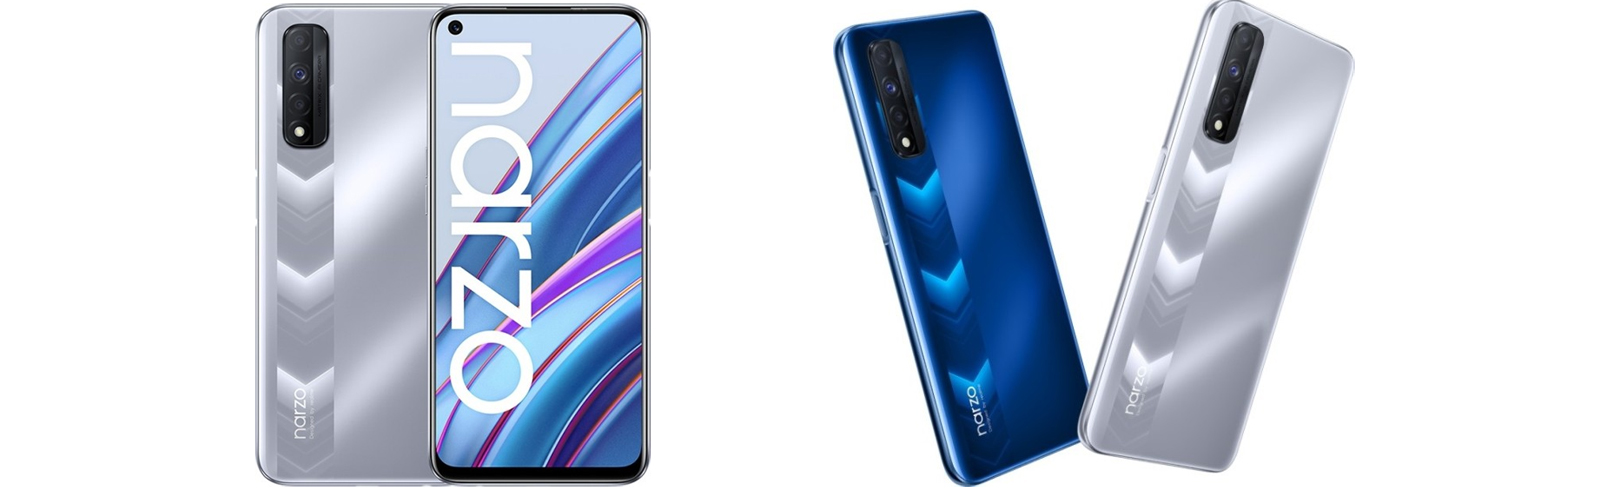 """Realme Narzo 30 is unveiled with a 6.5"""" FHD IPS display, Helio G95 chipset"""